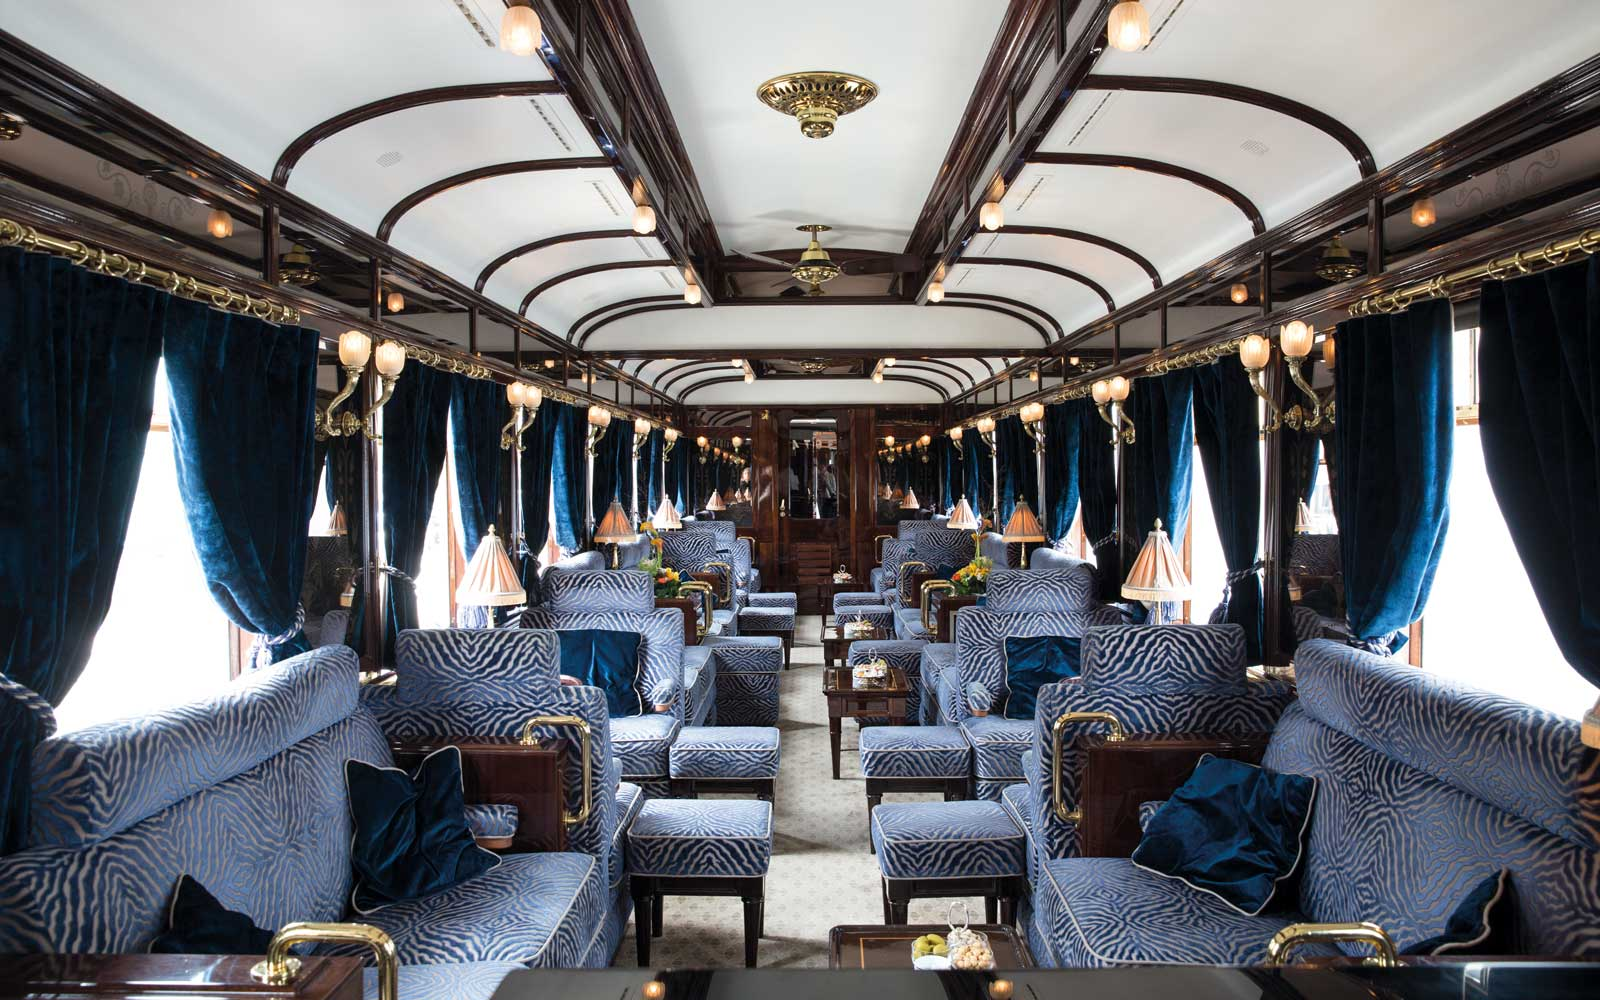 3674 - Named after the original number given to the carriage, the bar cart interiors are decorated in a timeless glamour featuring vibrant blue and gold detailing, reflecting the history of the train. This is the perfect place to enjoy an elegant evening with friends.